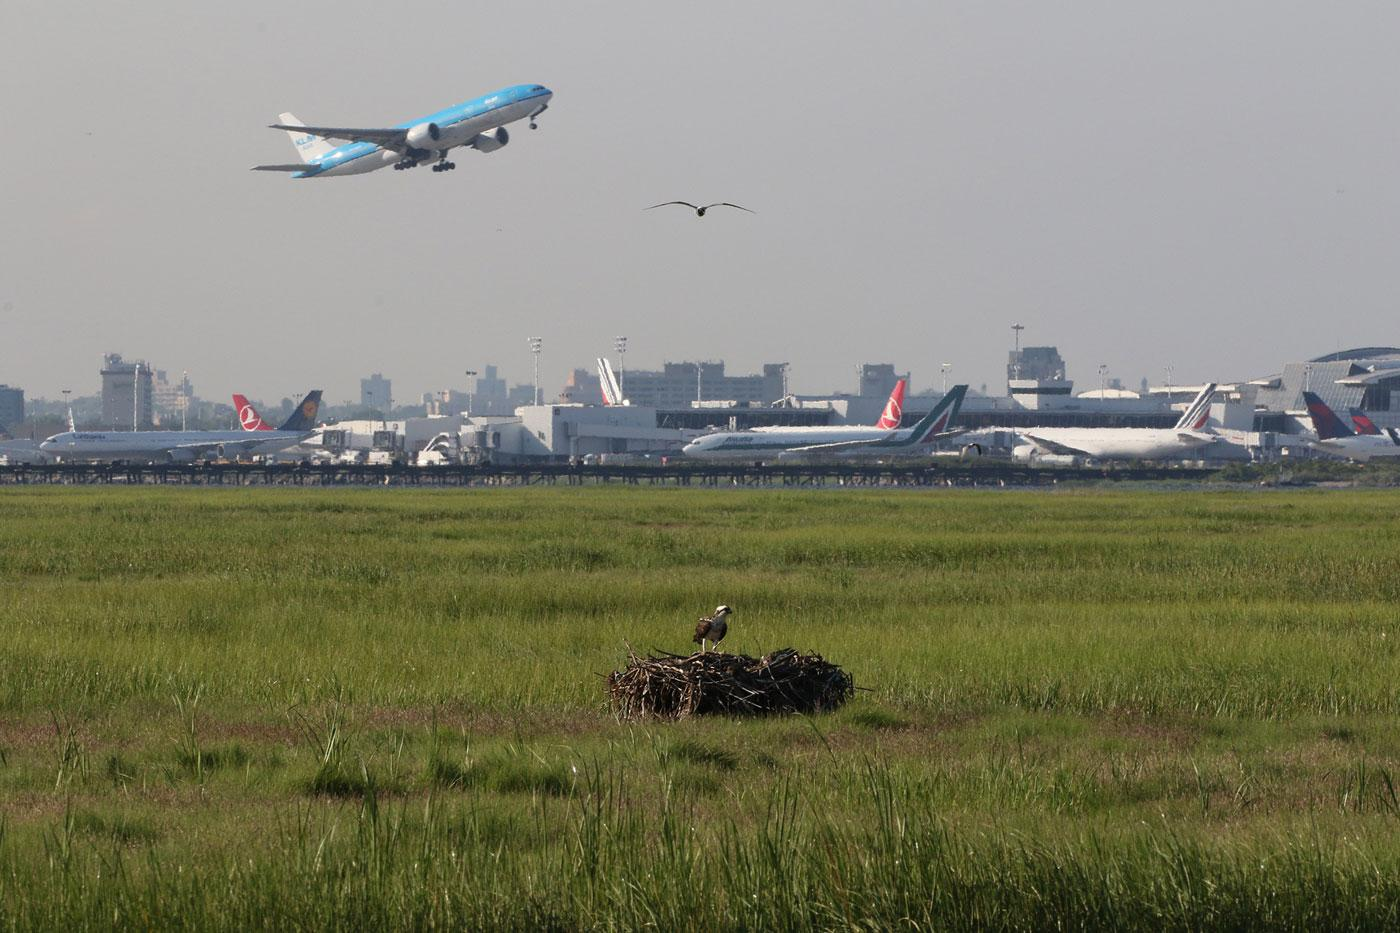 A nesting osprey shares the sky with planes from New York City's John F. Kennedy Airport. (Don Riepe / American Littoral Society)